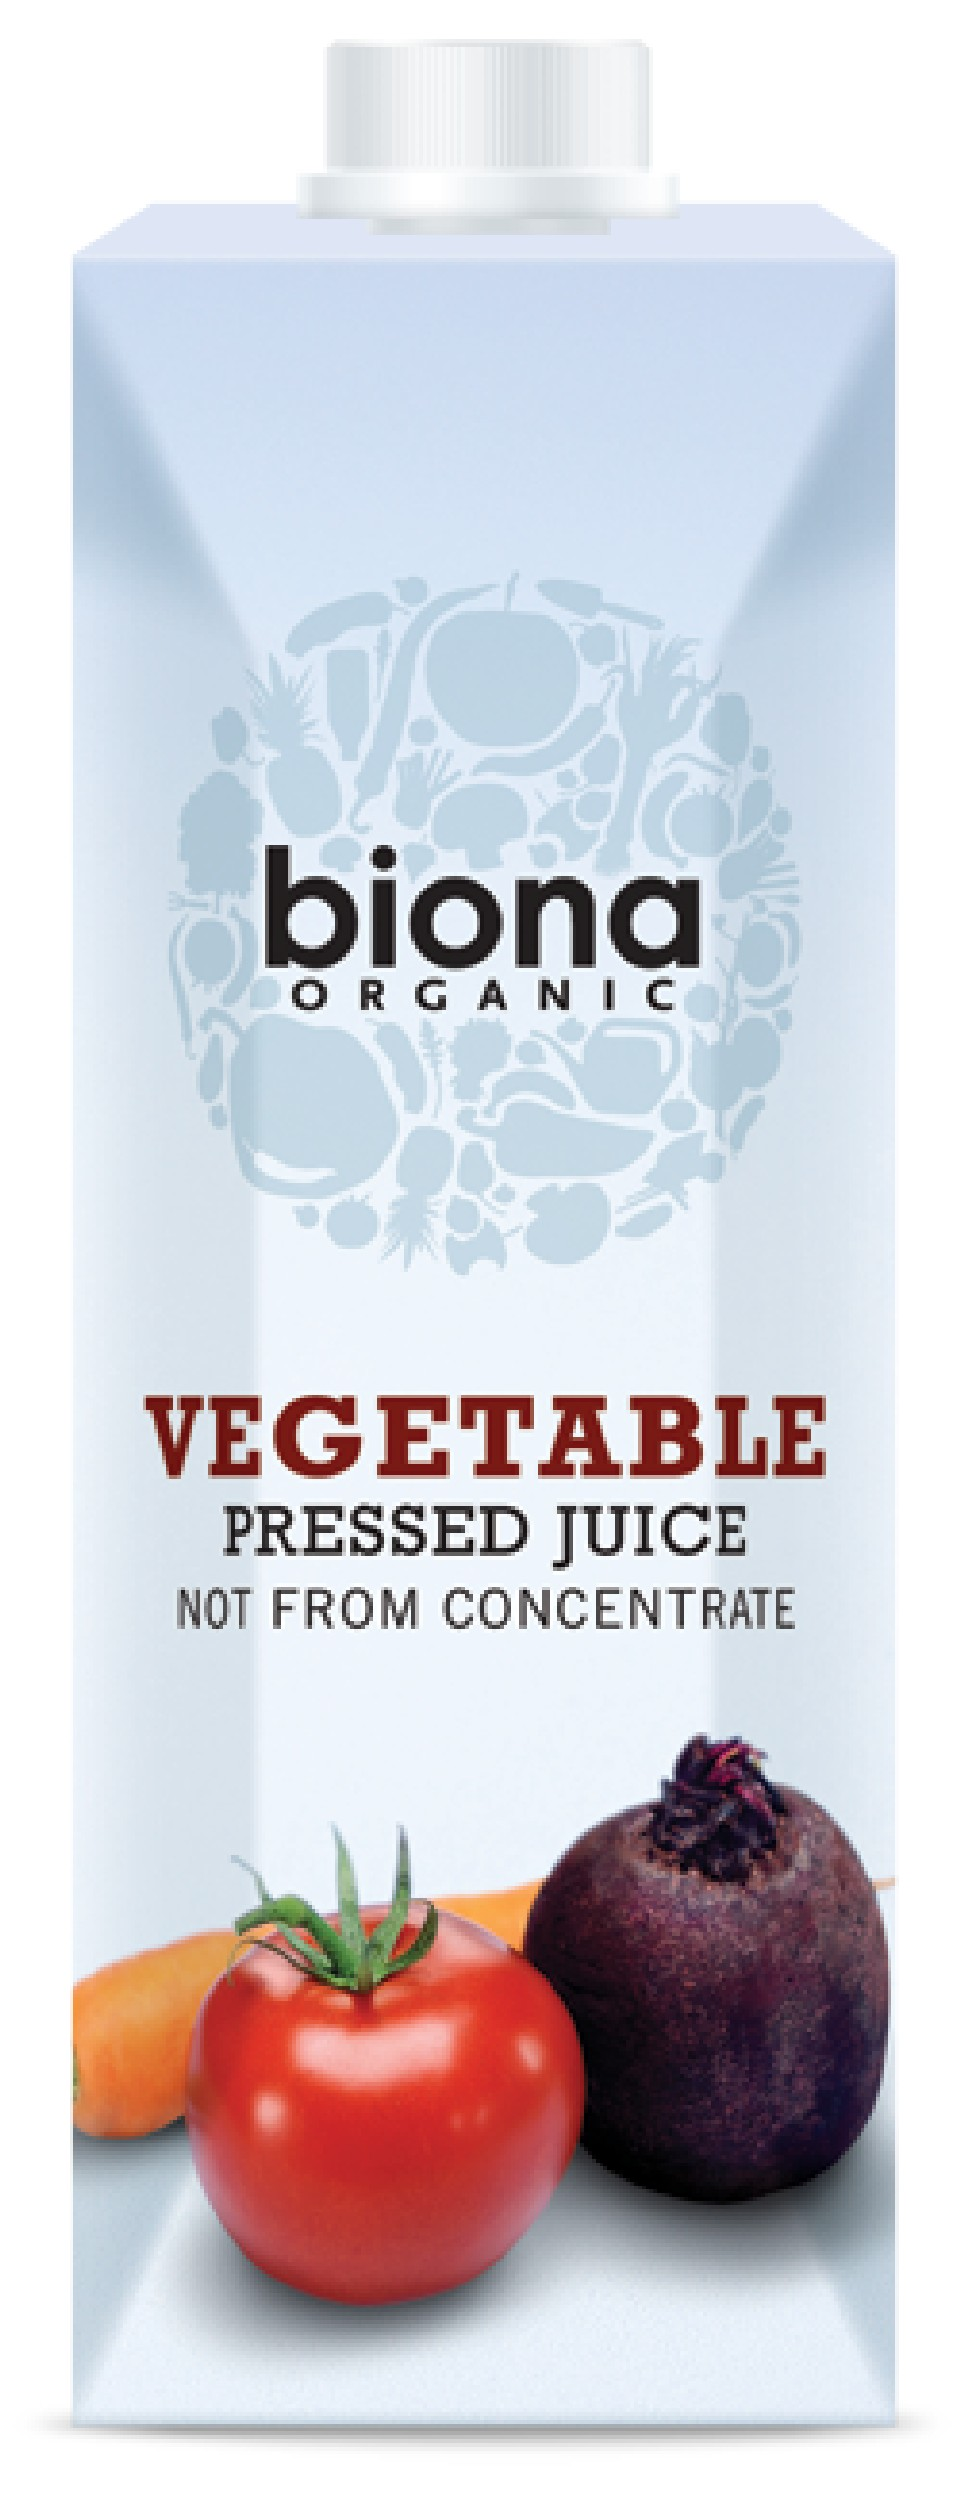 Biona_Vegetable Pressed Juice.JPG